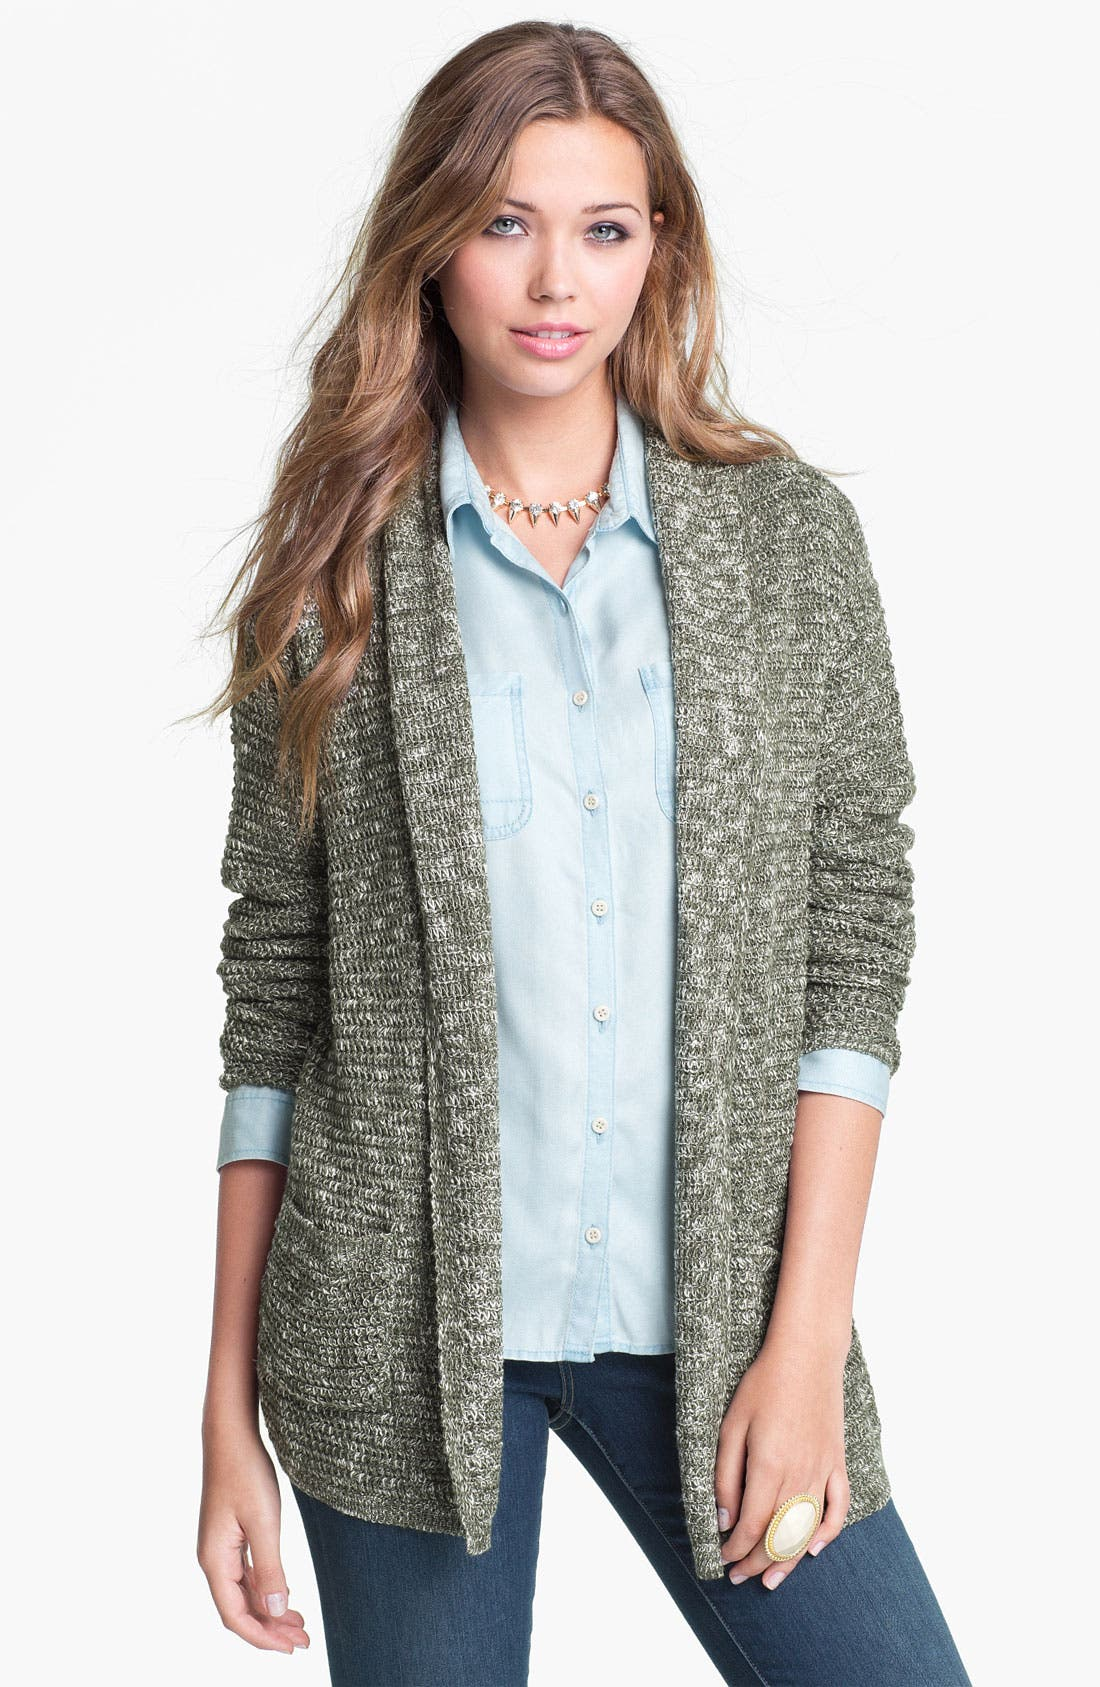 Alternate Image 1 Selected - Cotton Emporium Marled Cardigan (Juniors)